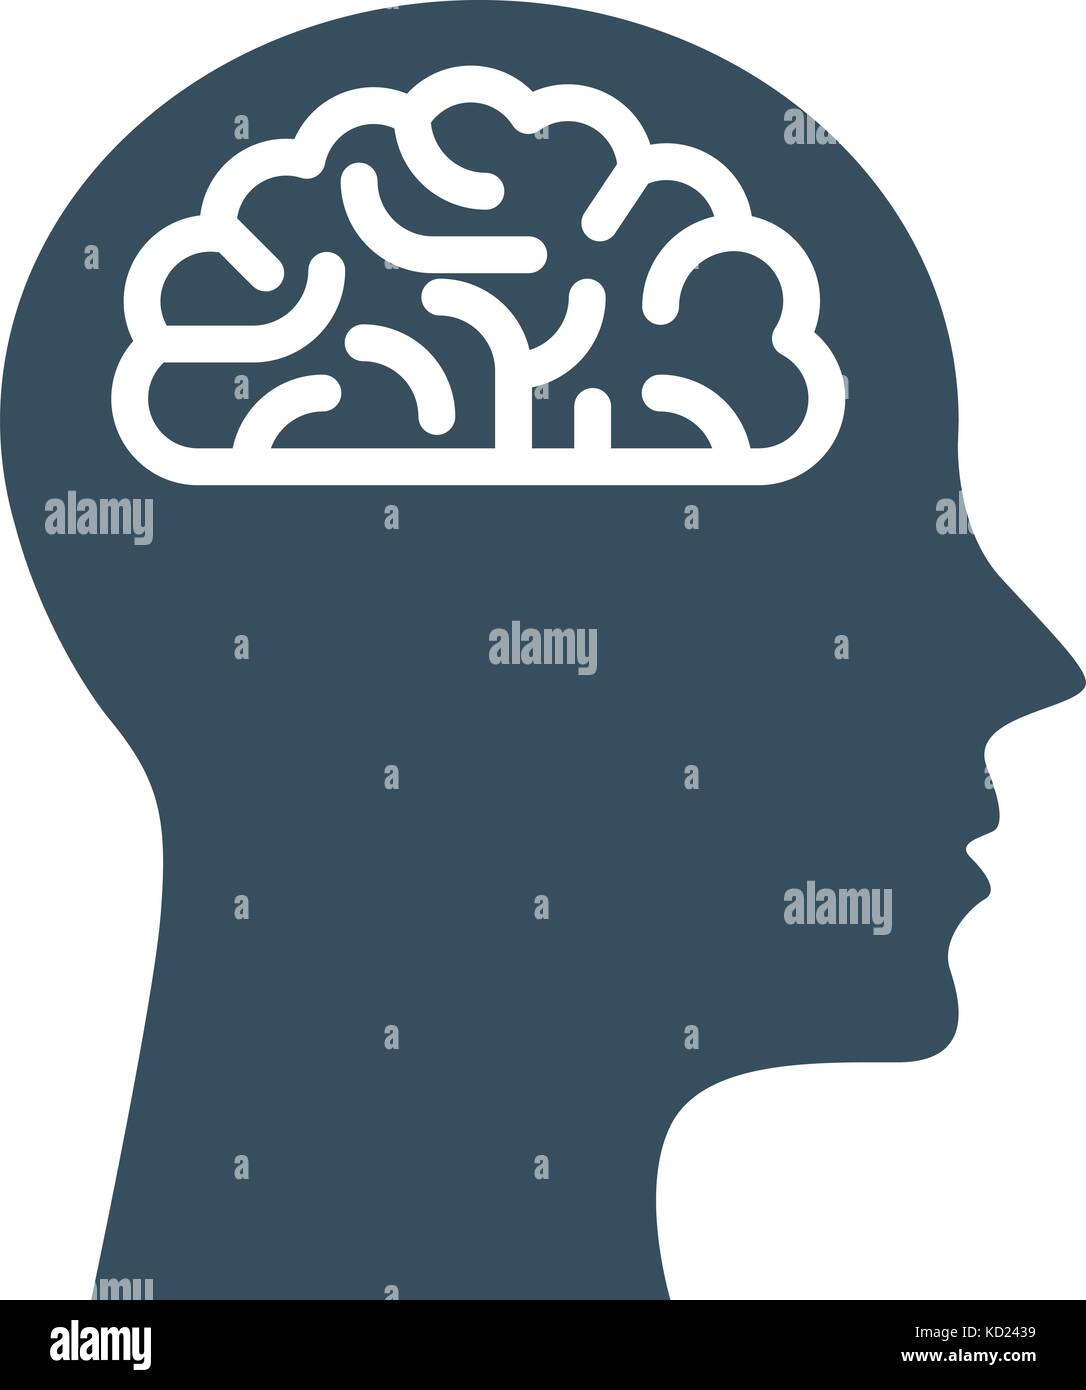 Personal IQ - head with brain, intelligence and knowledge symbol - Stock Image